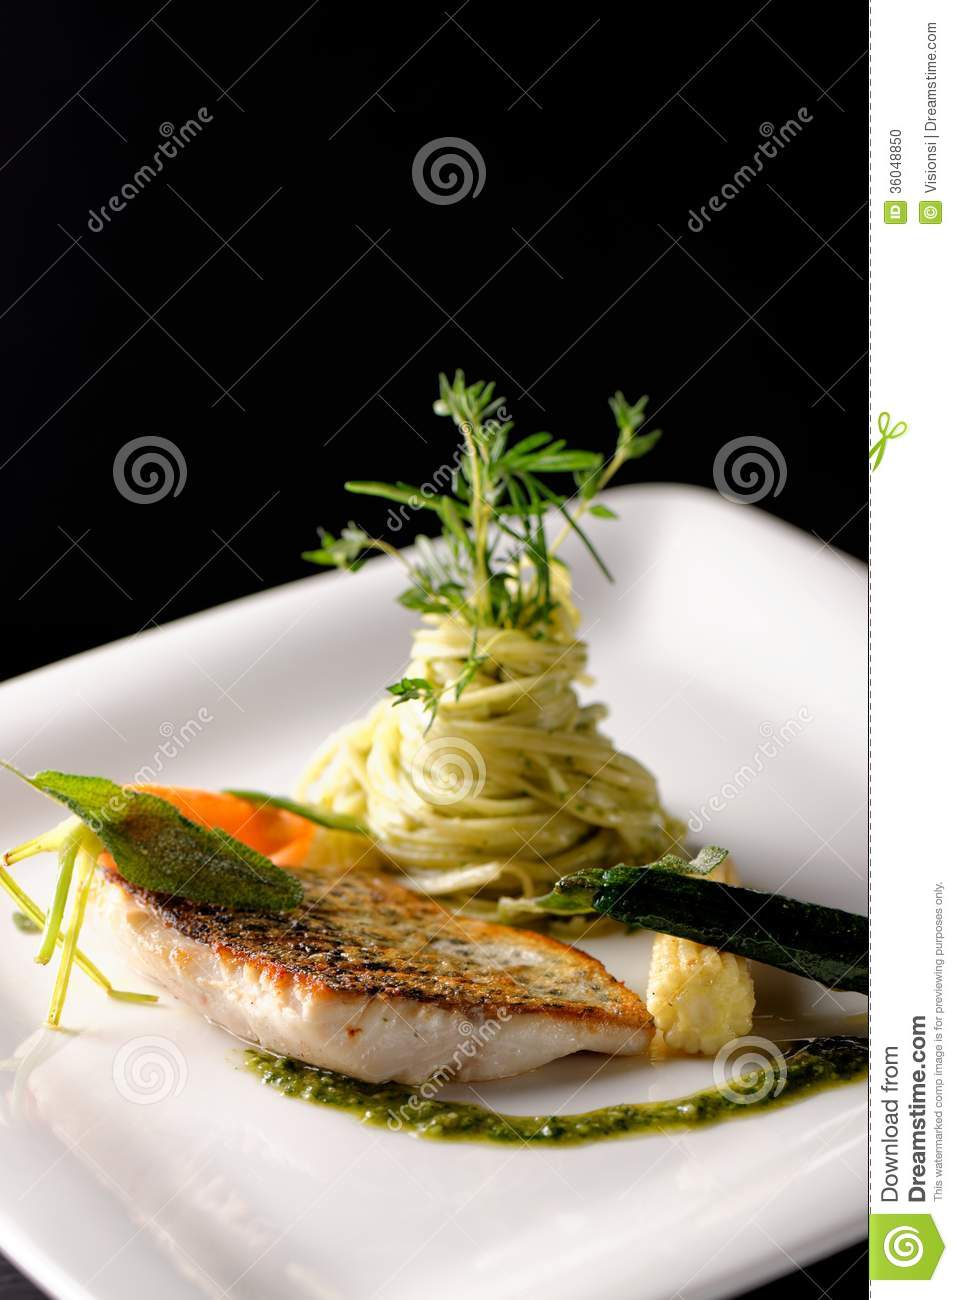 Fine Dining Fish Fillet Stock Photo Image 36048850